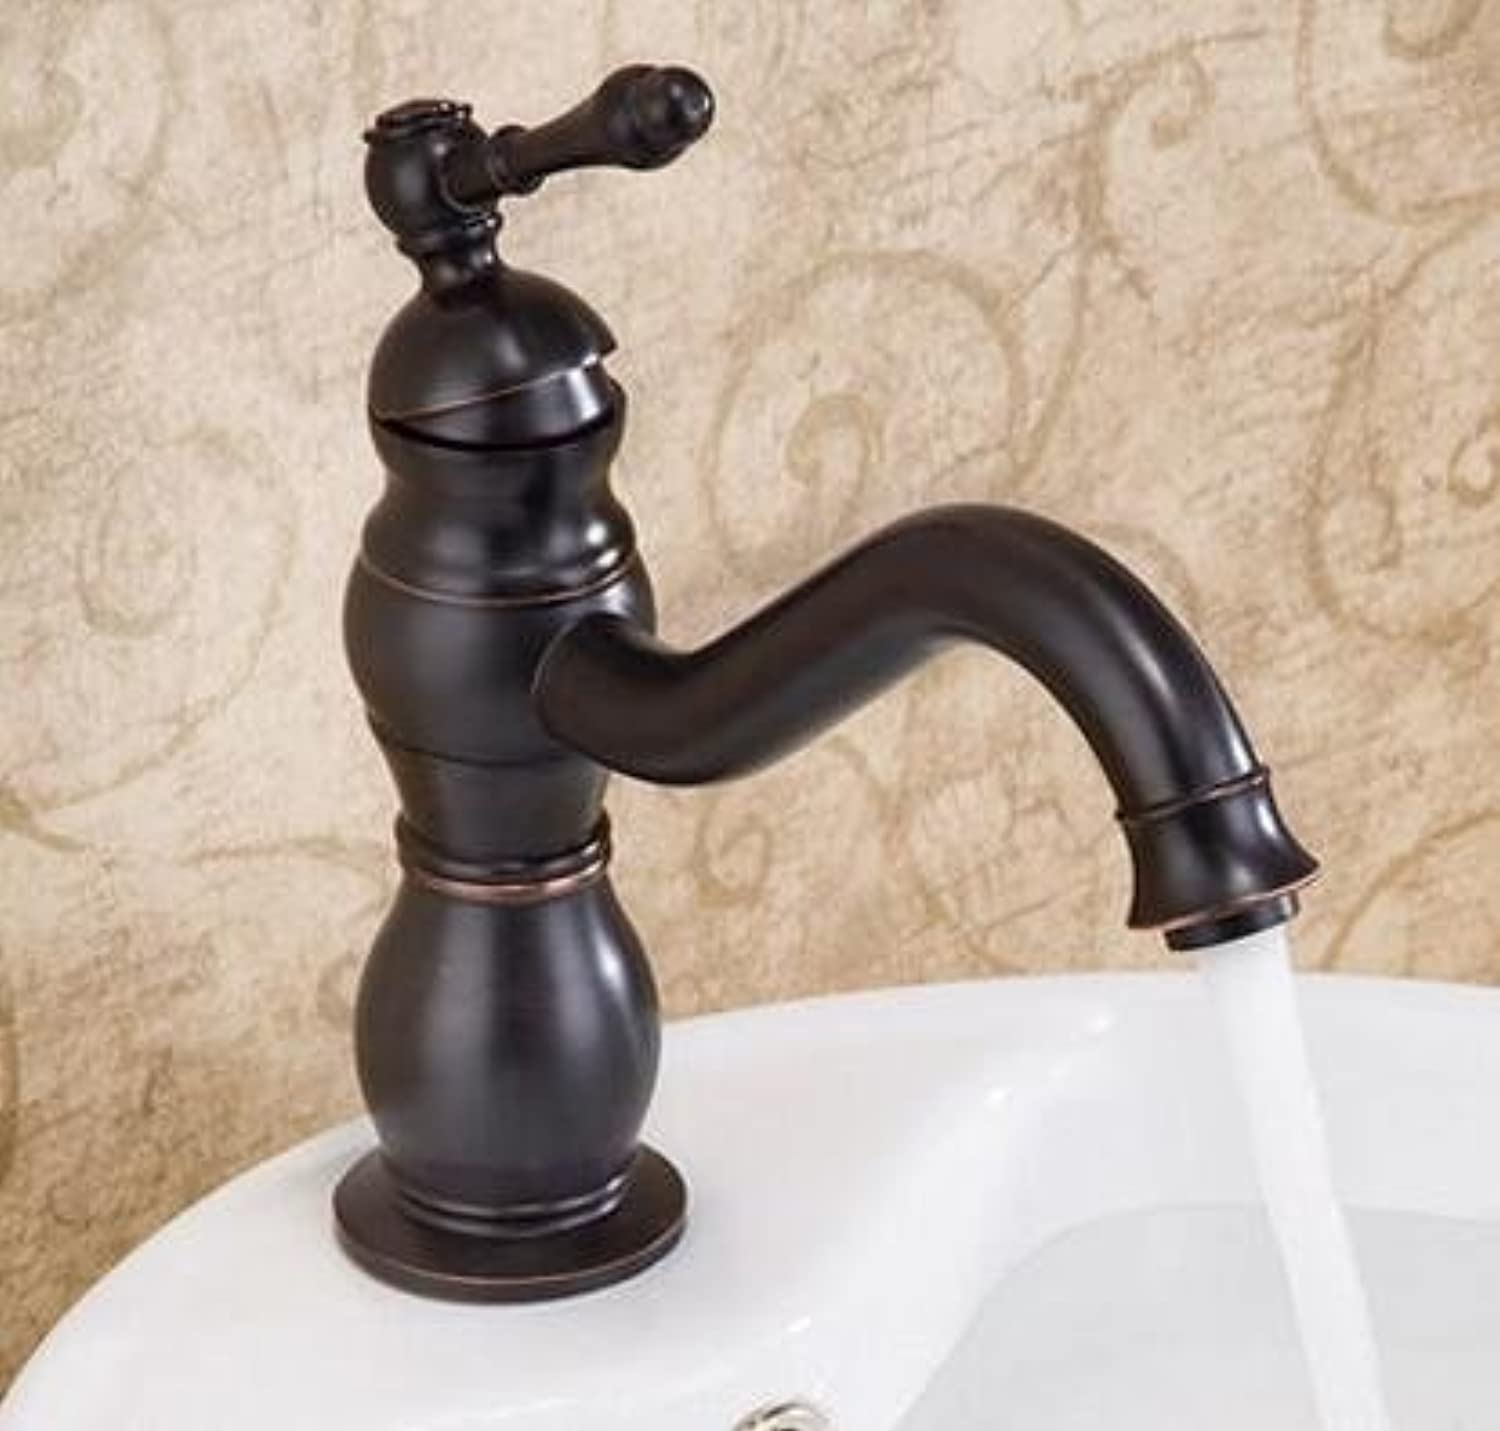 U-Enjoy Black Copper Bathroom Top Quality Faucet Fashion Vintage Hot and Cold Sink Faucet Wash Mixer Sink Faucet Water Tap (Free Shipping)